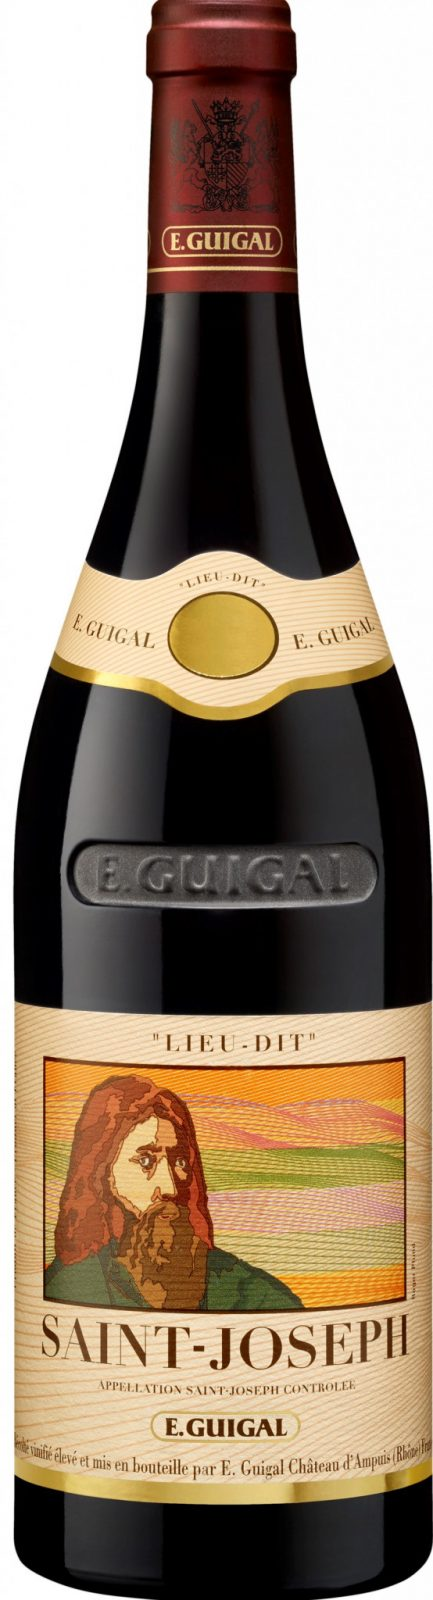 Guigal Saint-Joseph-Lieu-Dit-Rouge wineaffair